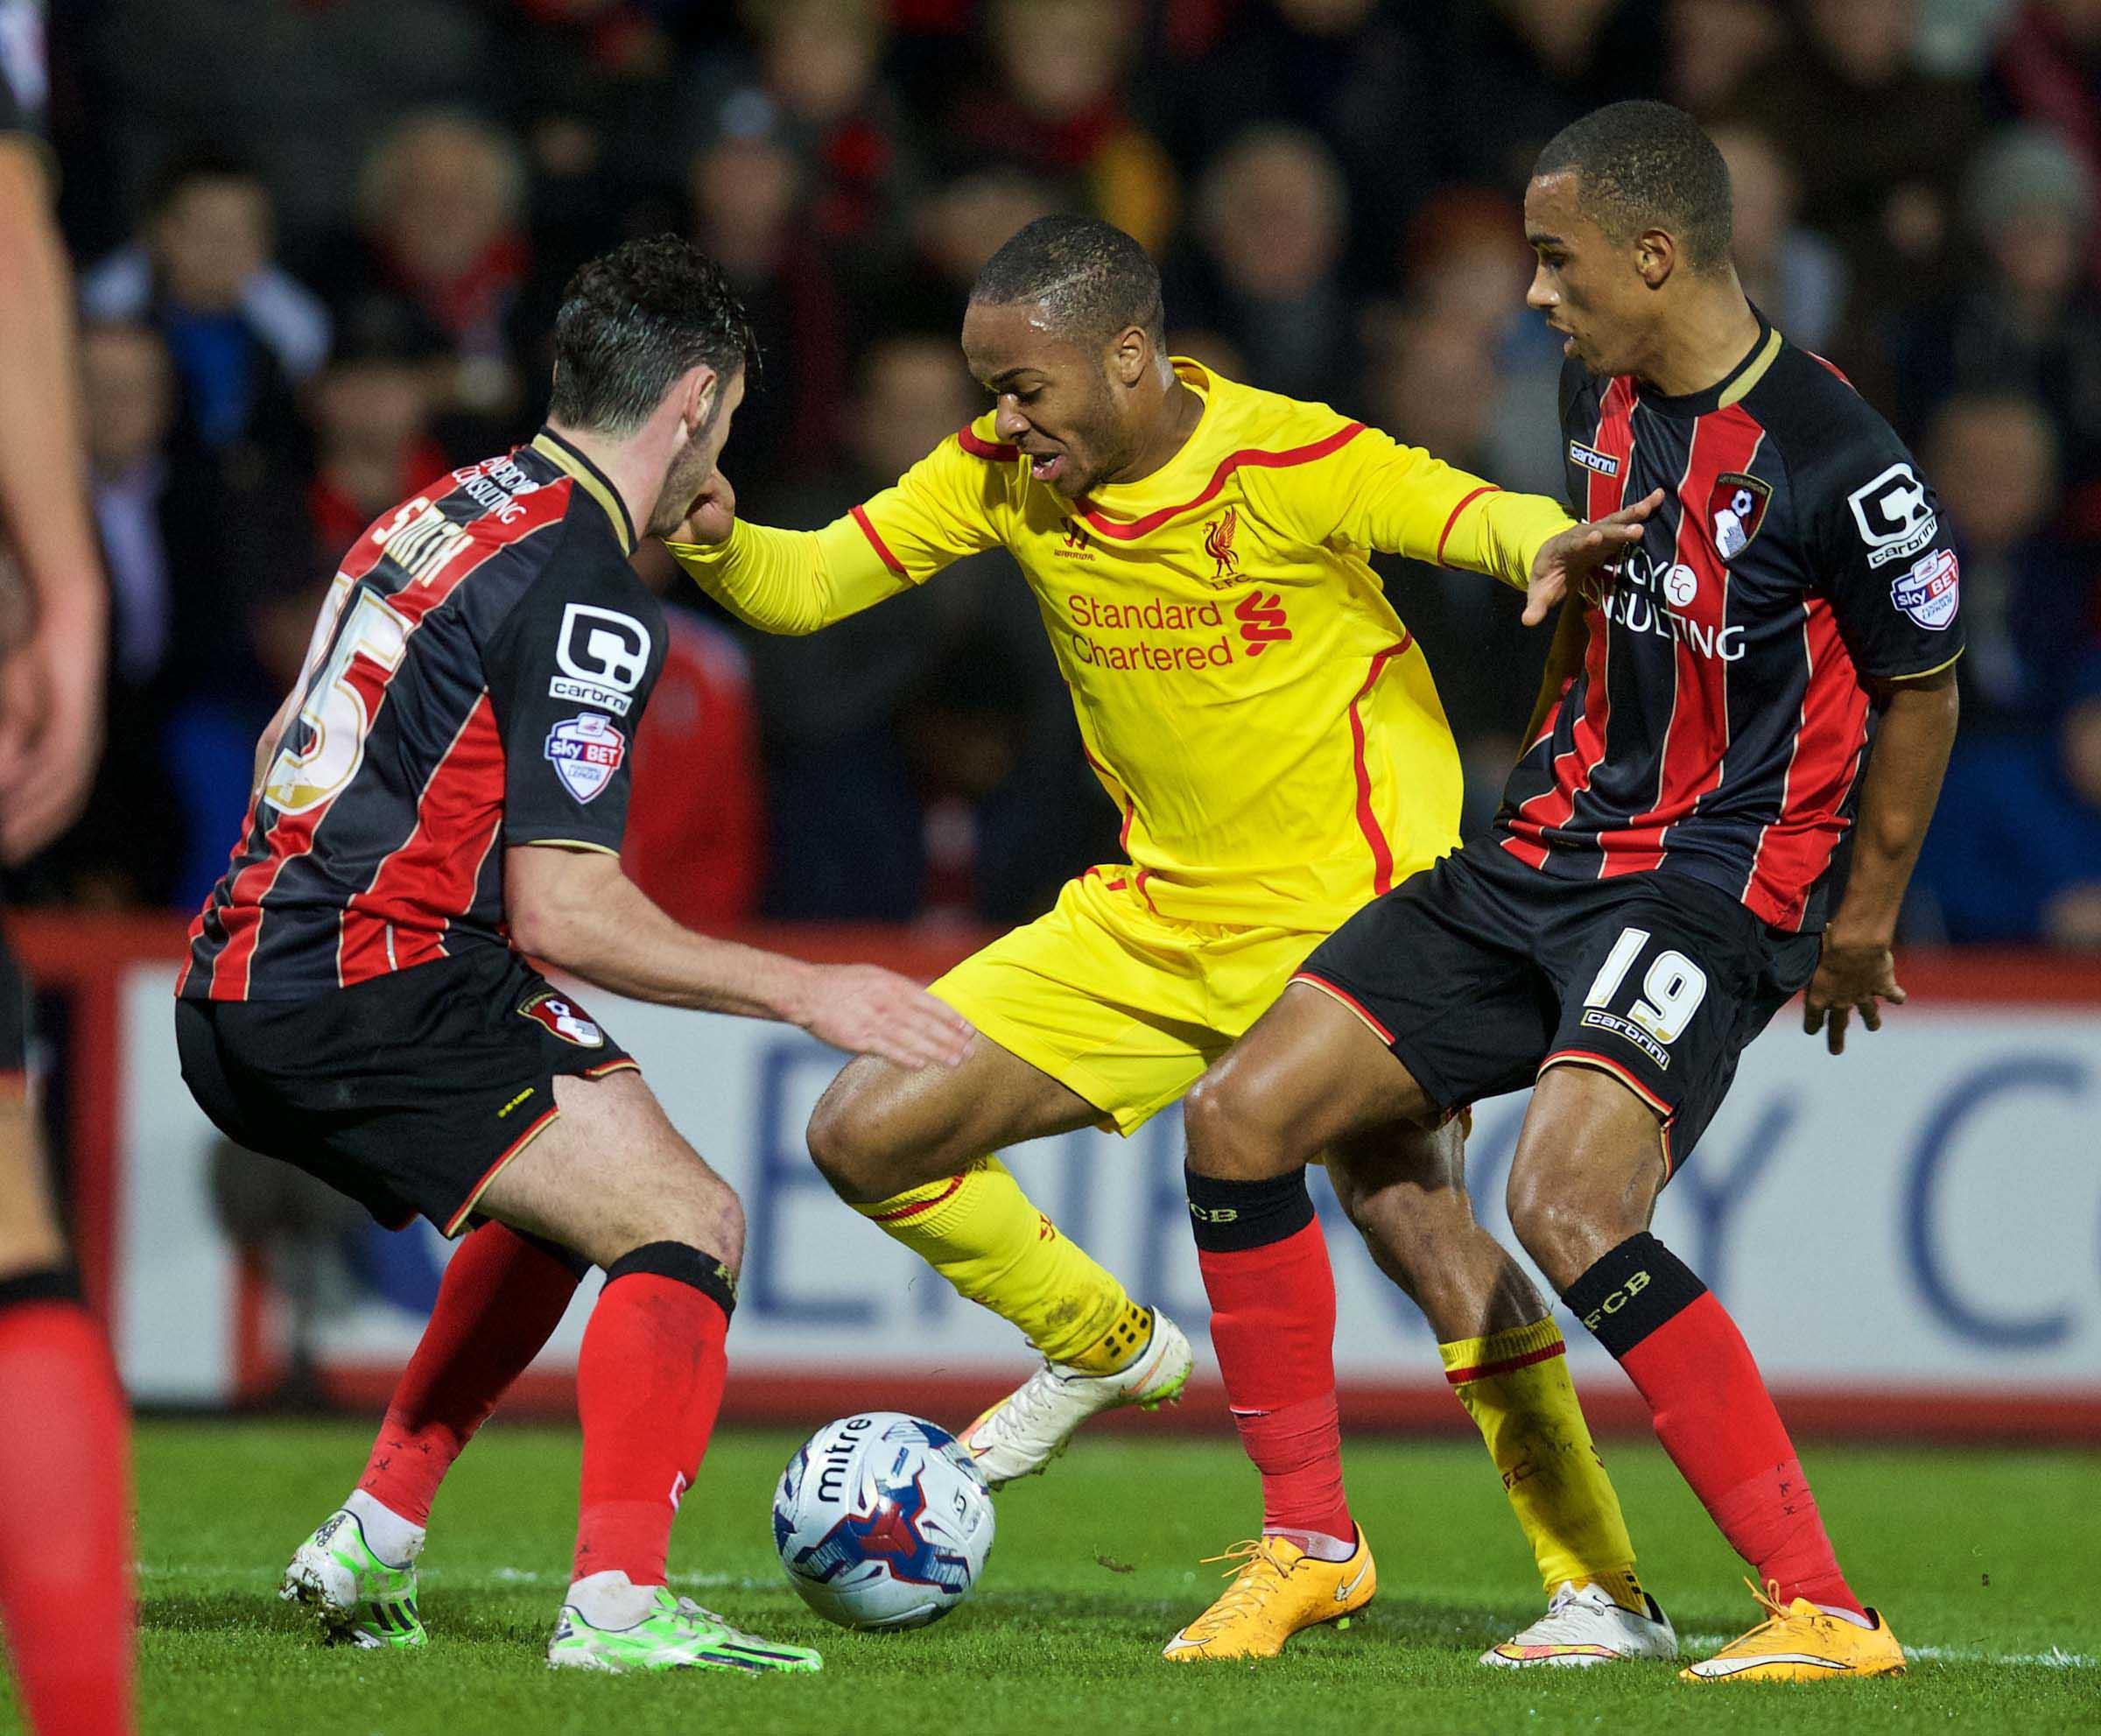 AFC BOURNEMOUTH 1 LIVERPOOL 3